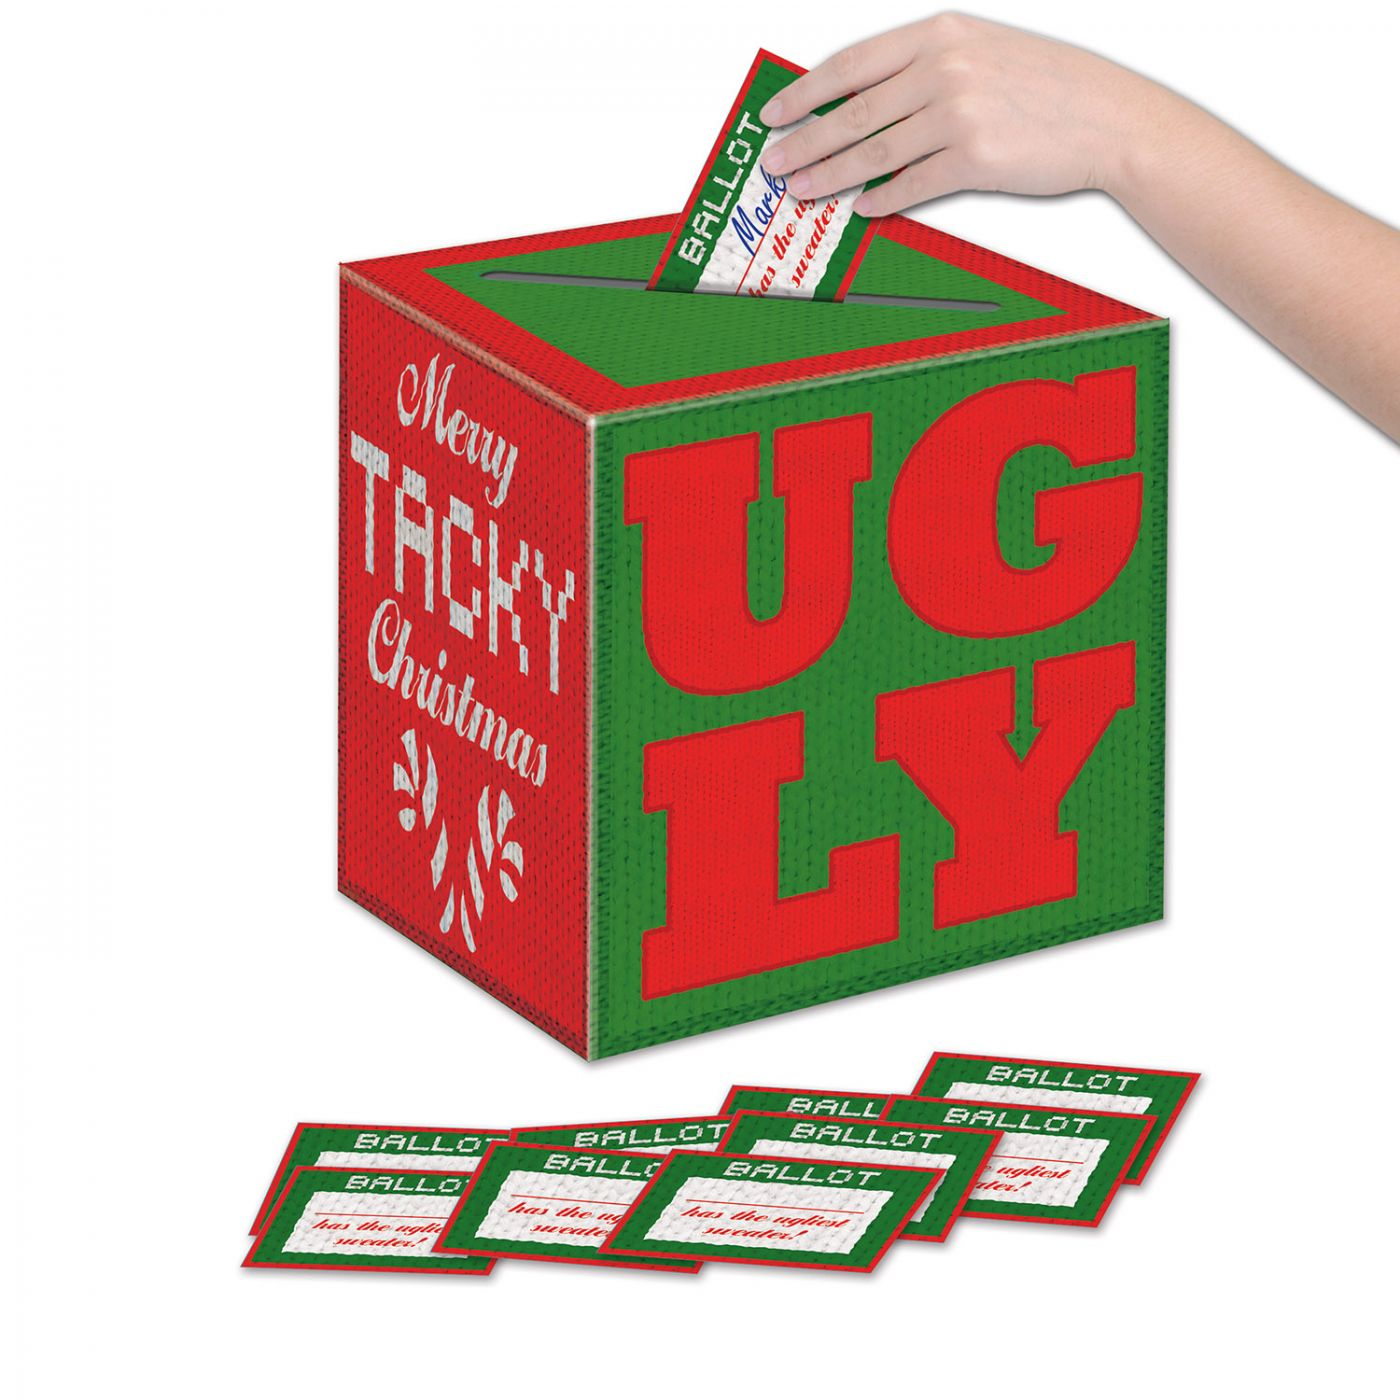 Ugly Sweater Ballot Box w/Ballots (6) image